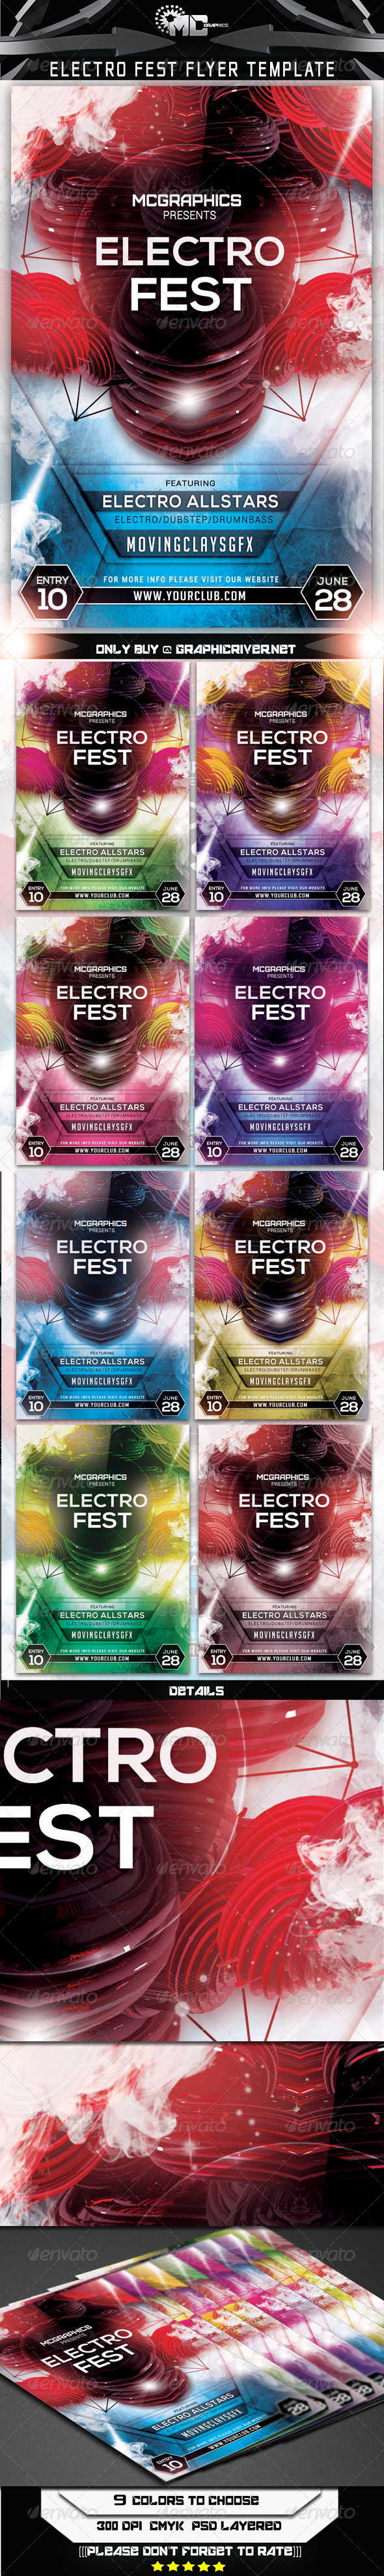 GraphicRiver Electro Fest Flyer Template 7550921